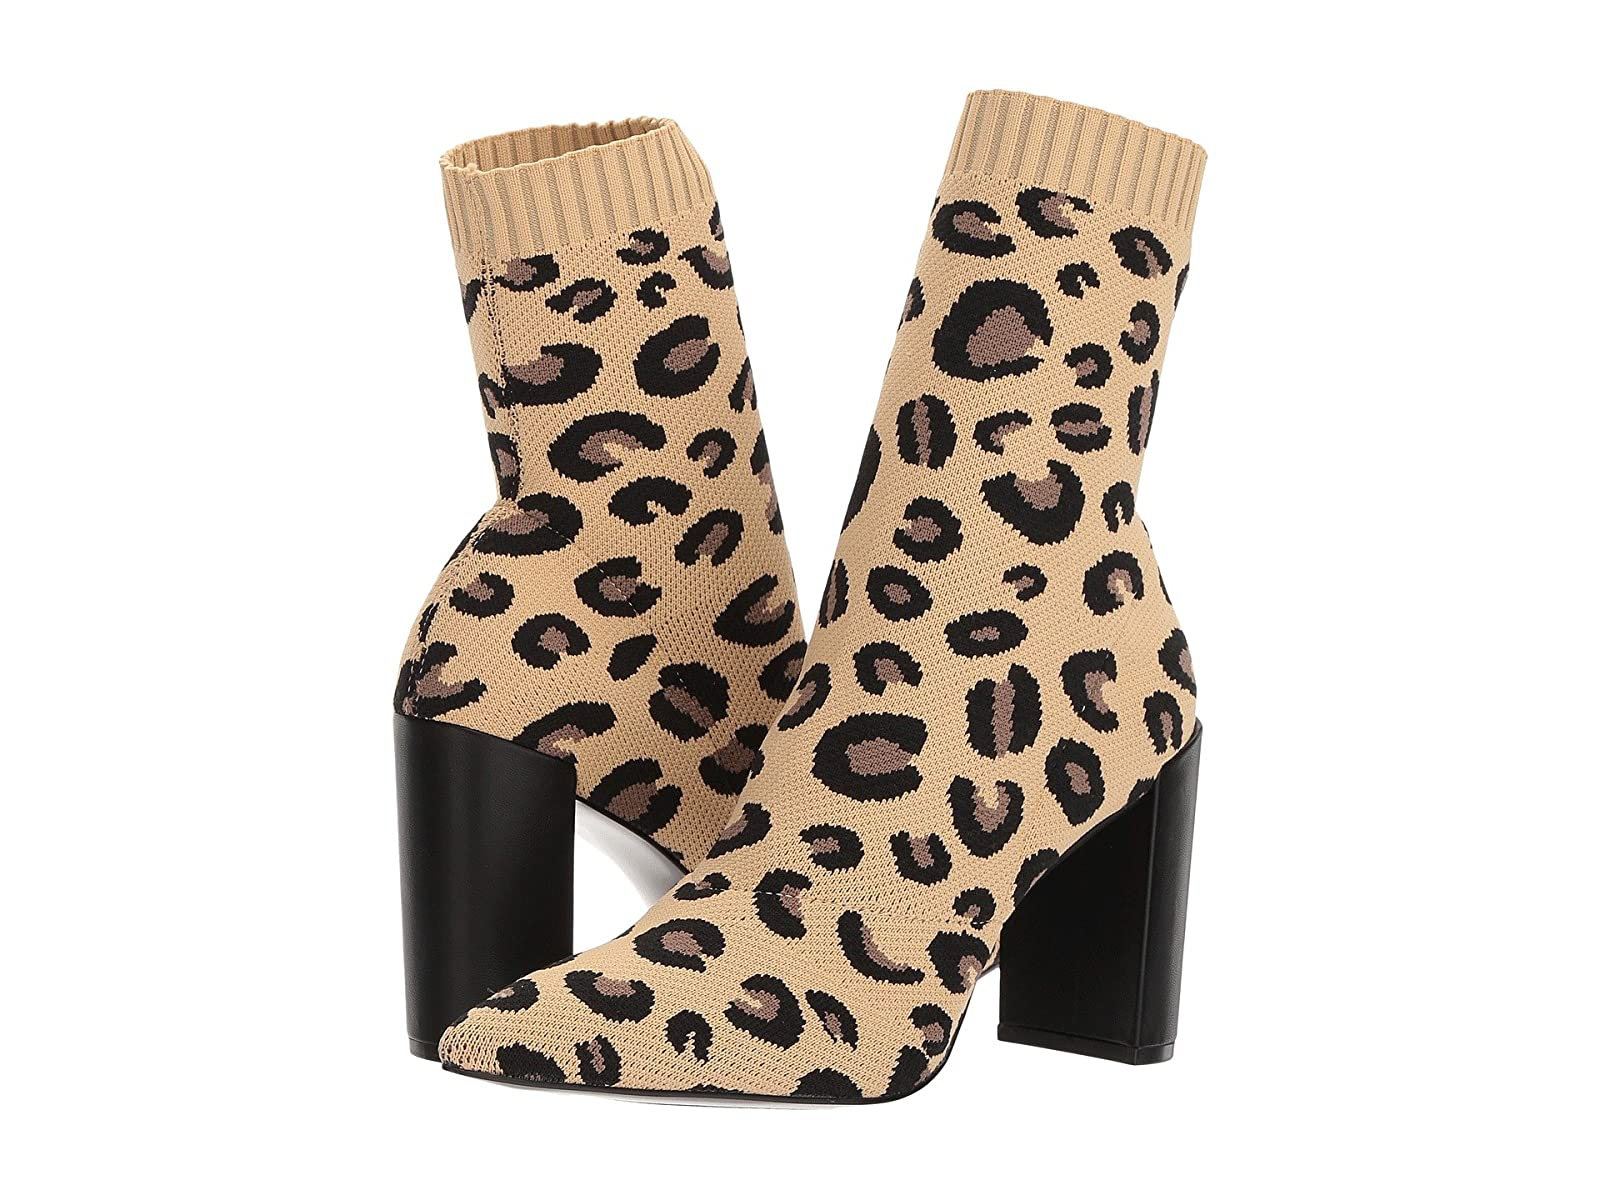 Chinese Laundry Raine BootCheap and distinctive eye-catching shoes